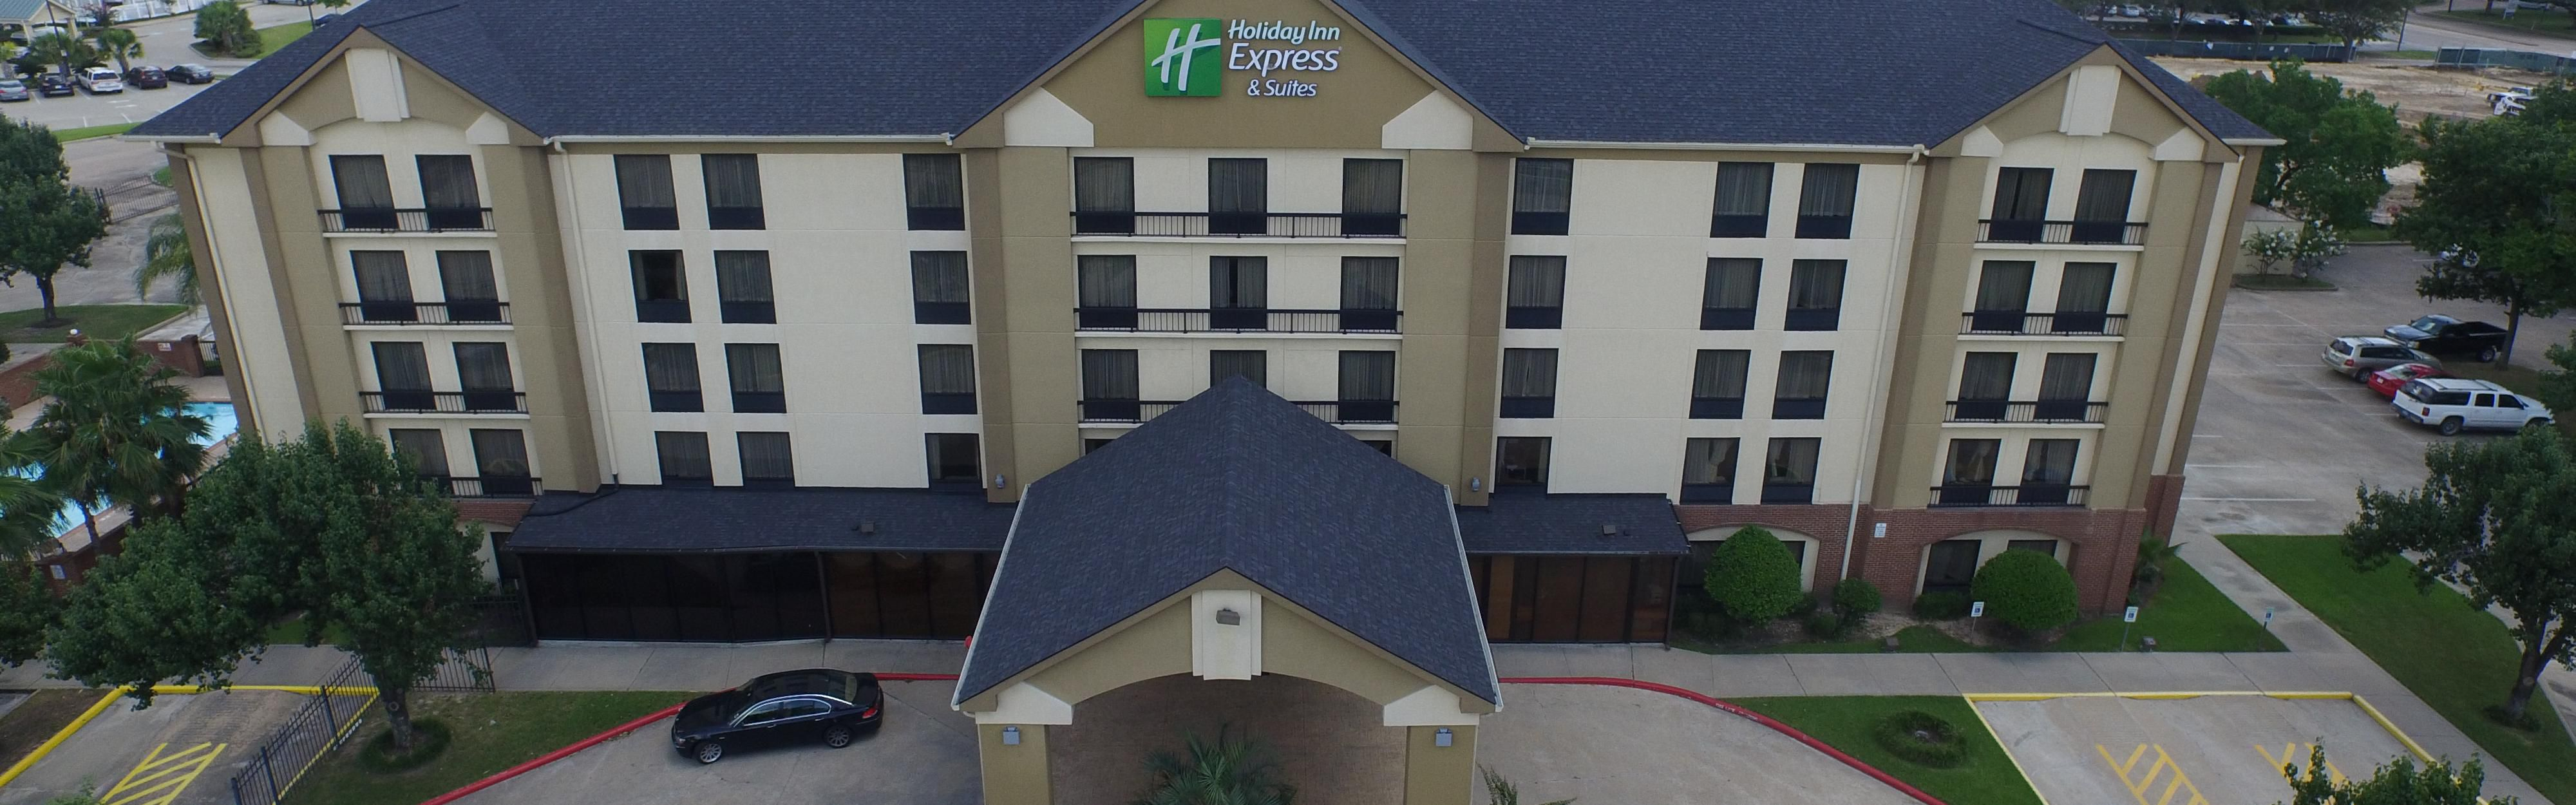 Holiday Inn Express & Suites Hou I-10 West Energy Corridor image 0